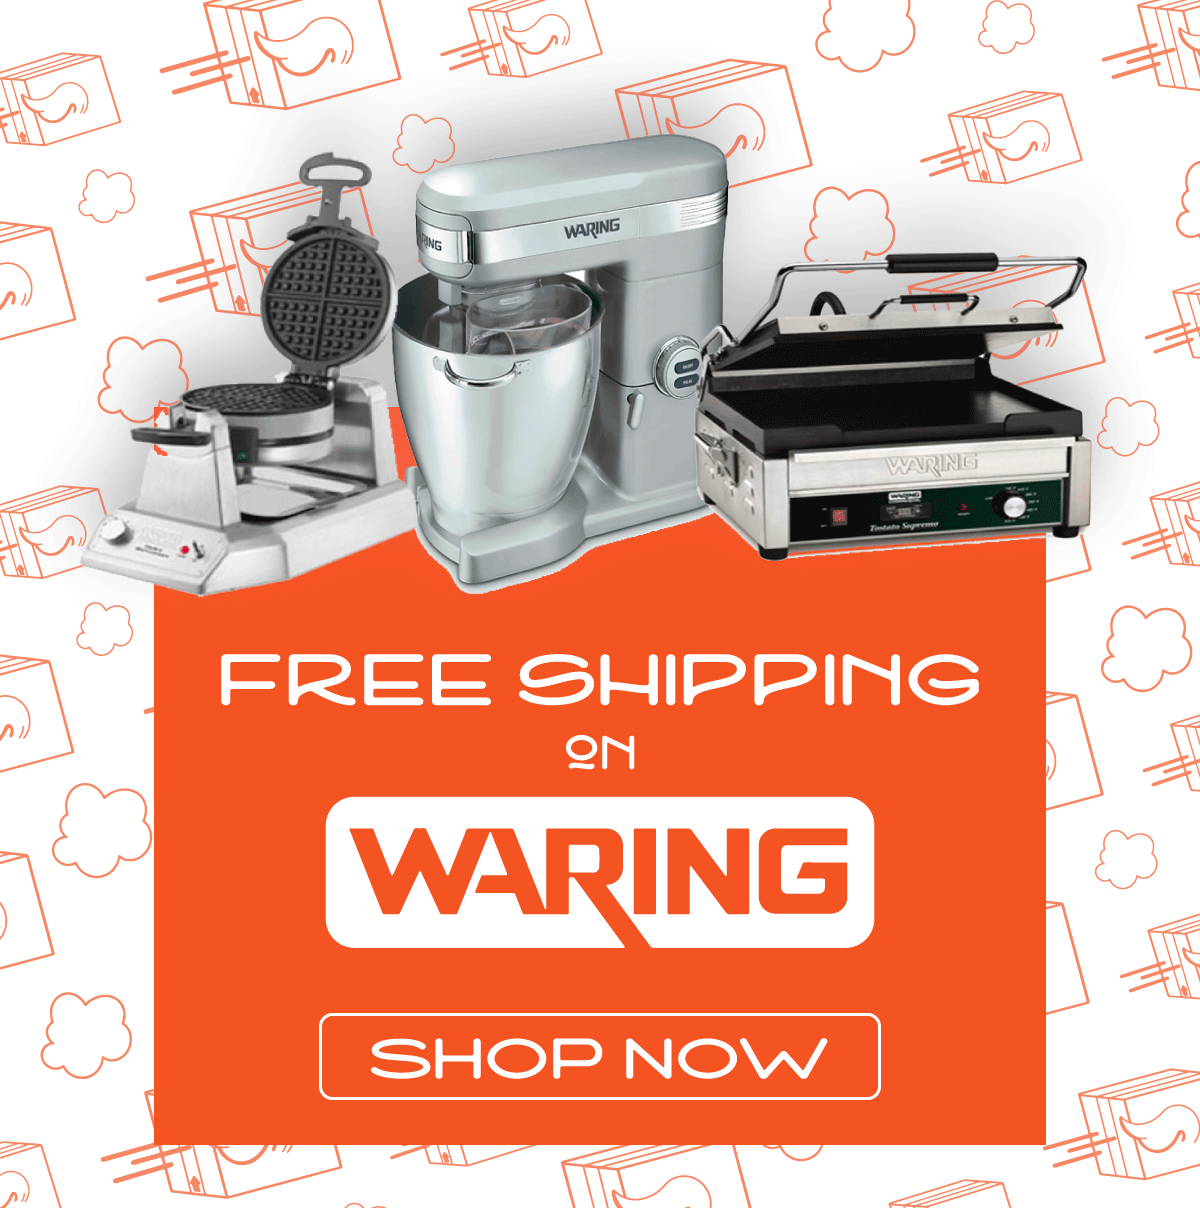 Free shipping on Waring Products